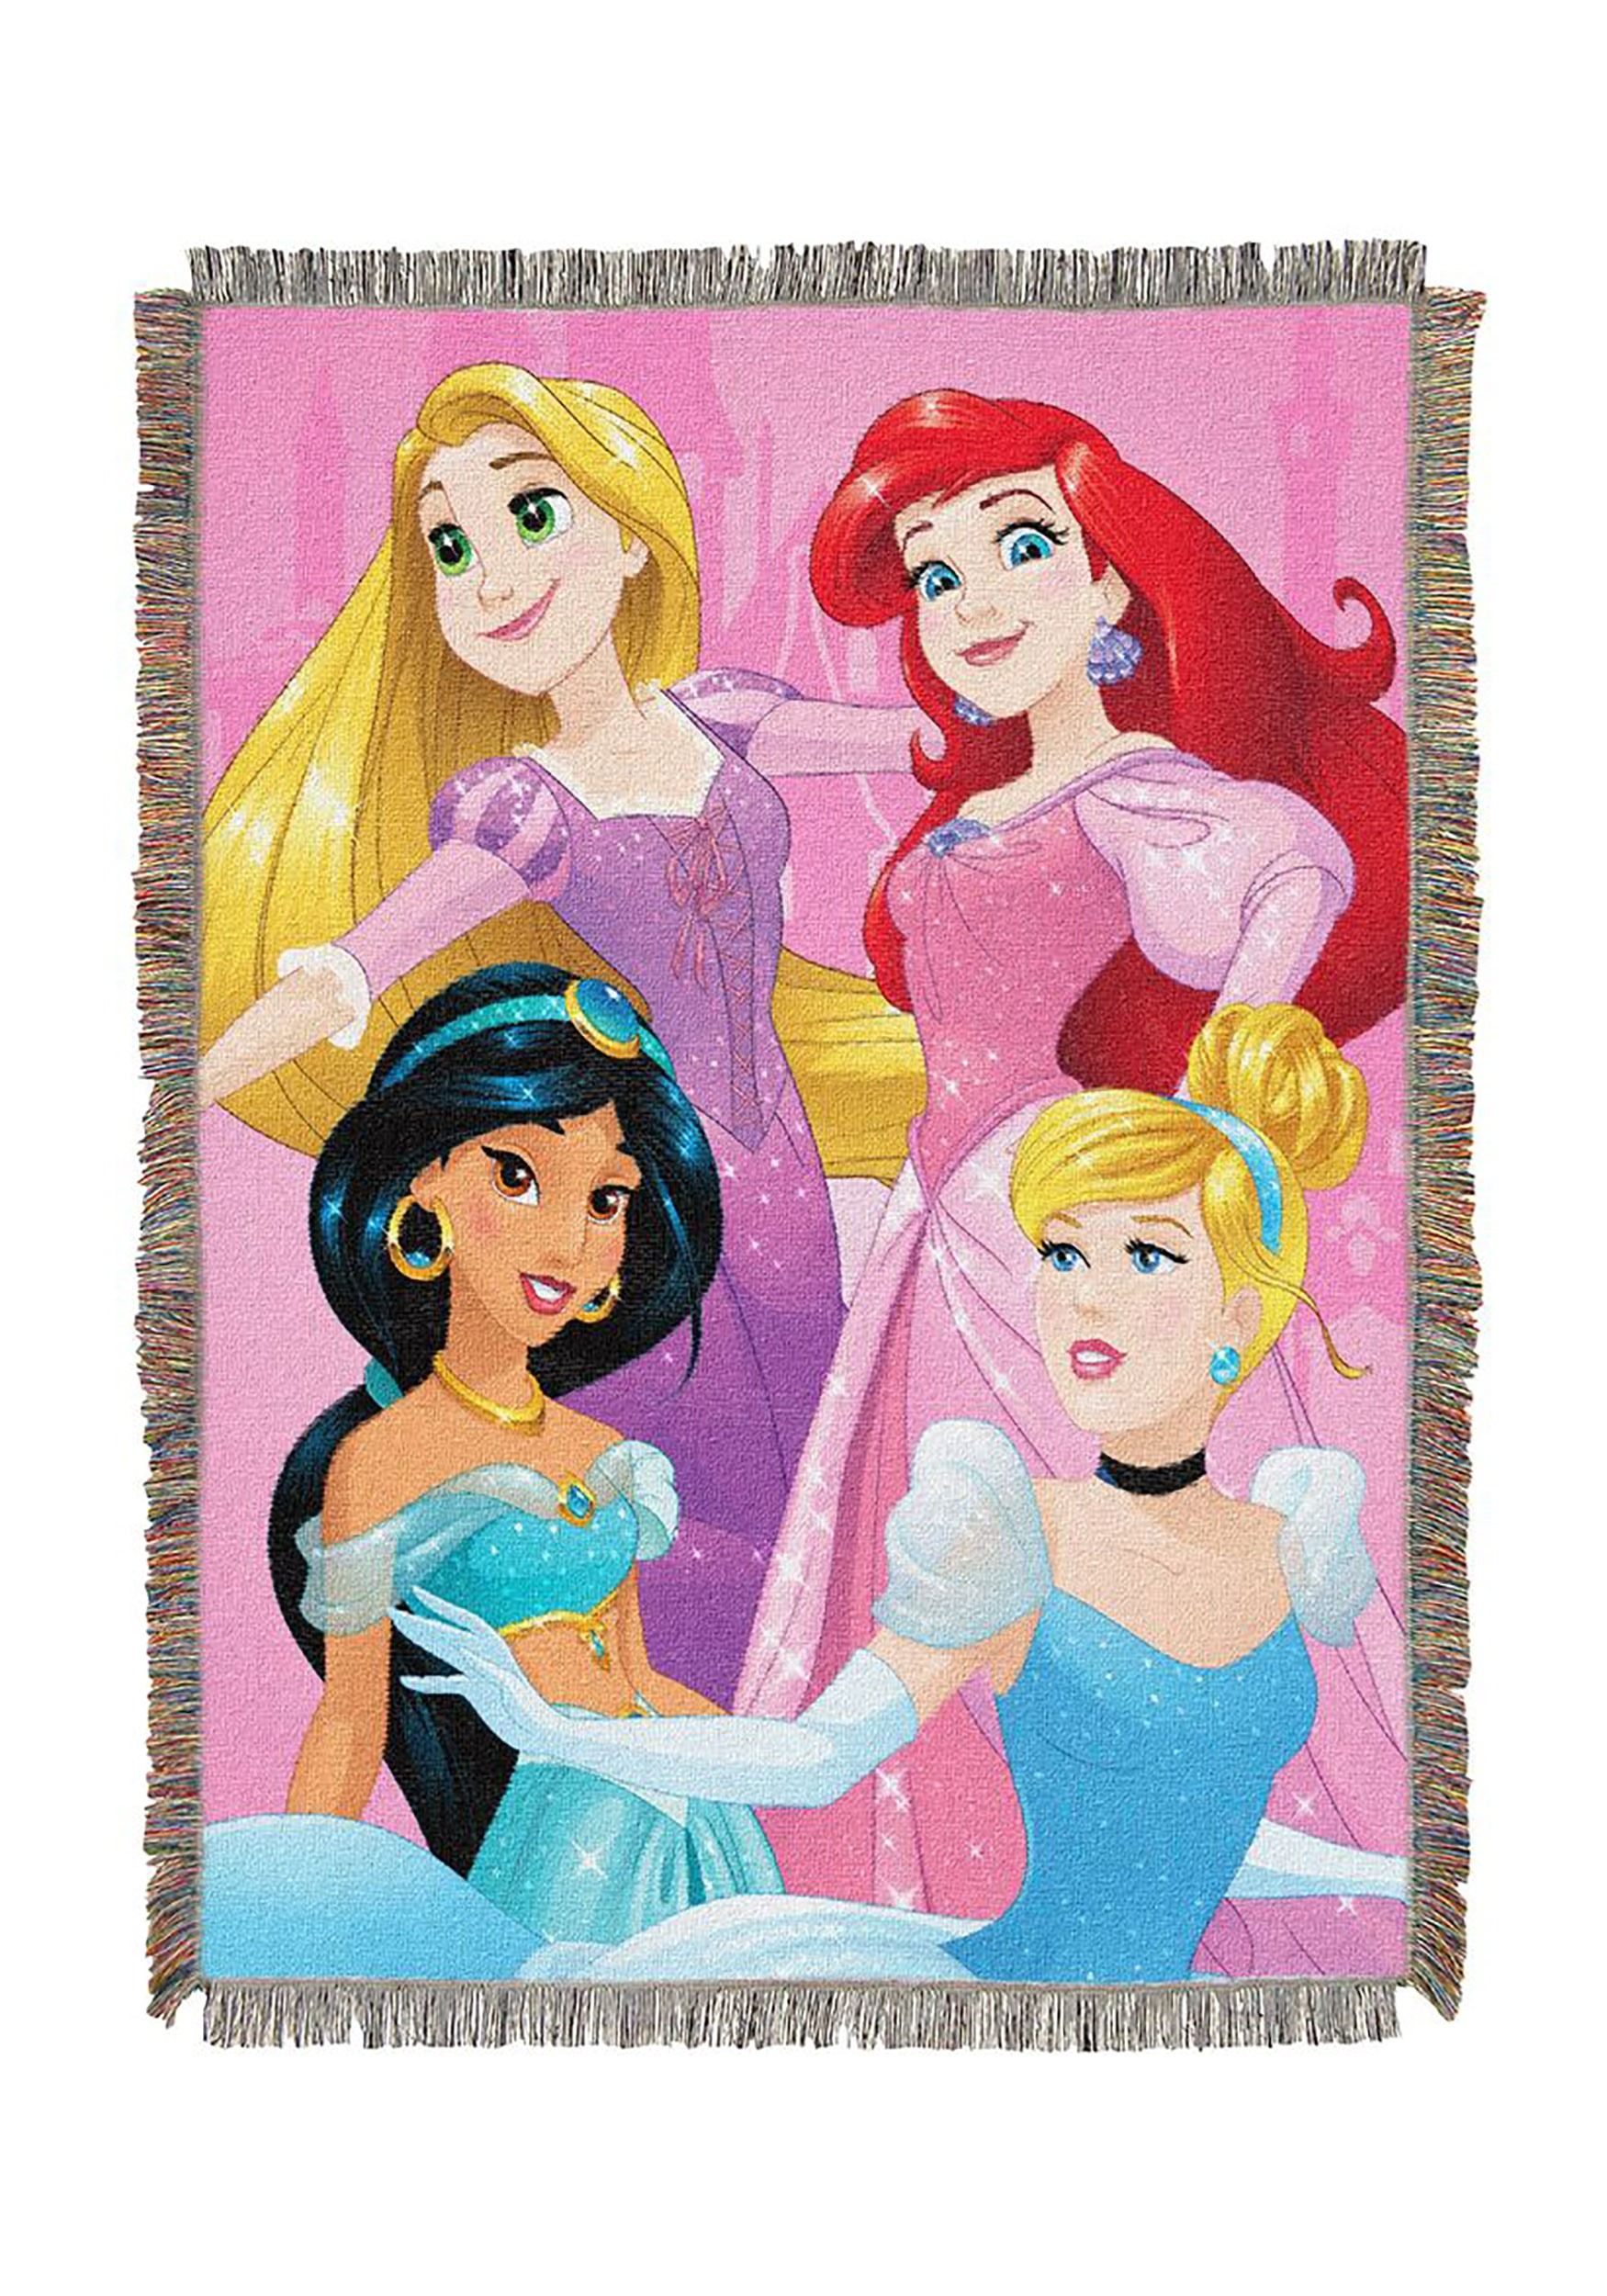 Born to Rule Disney Princesses Woven Tapestry Throw